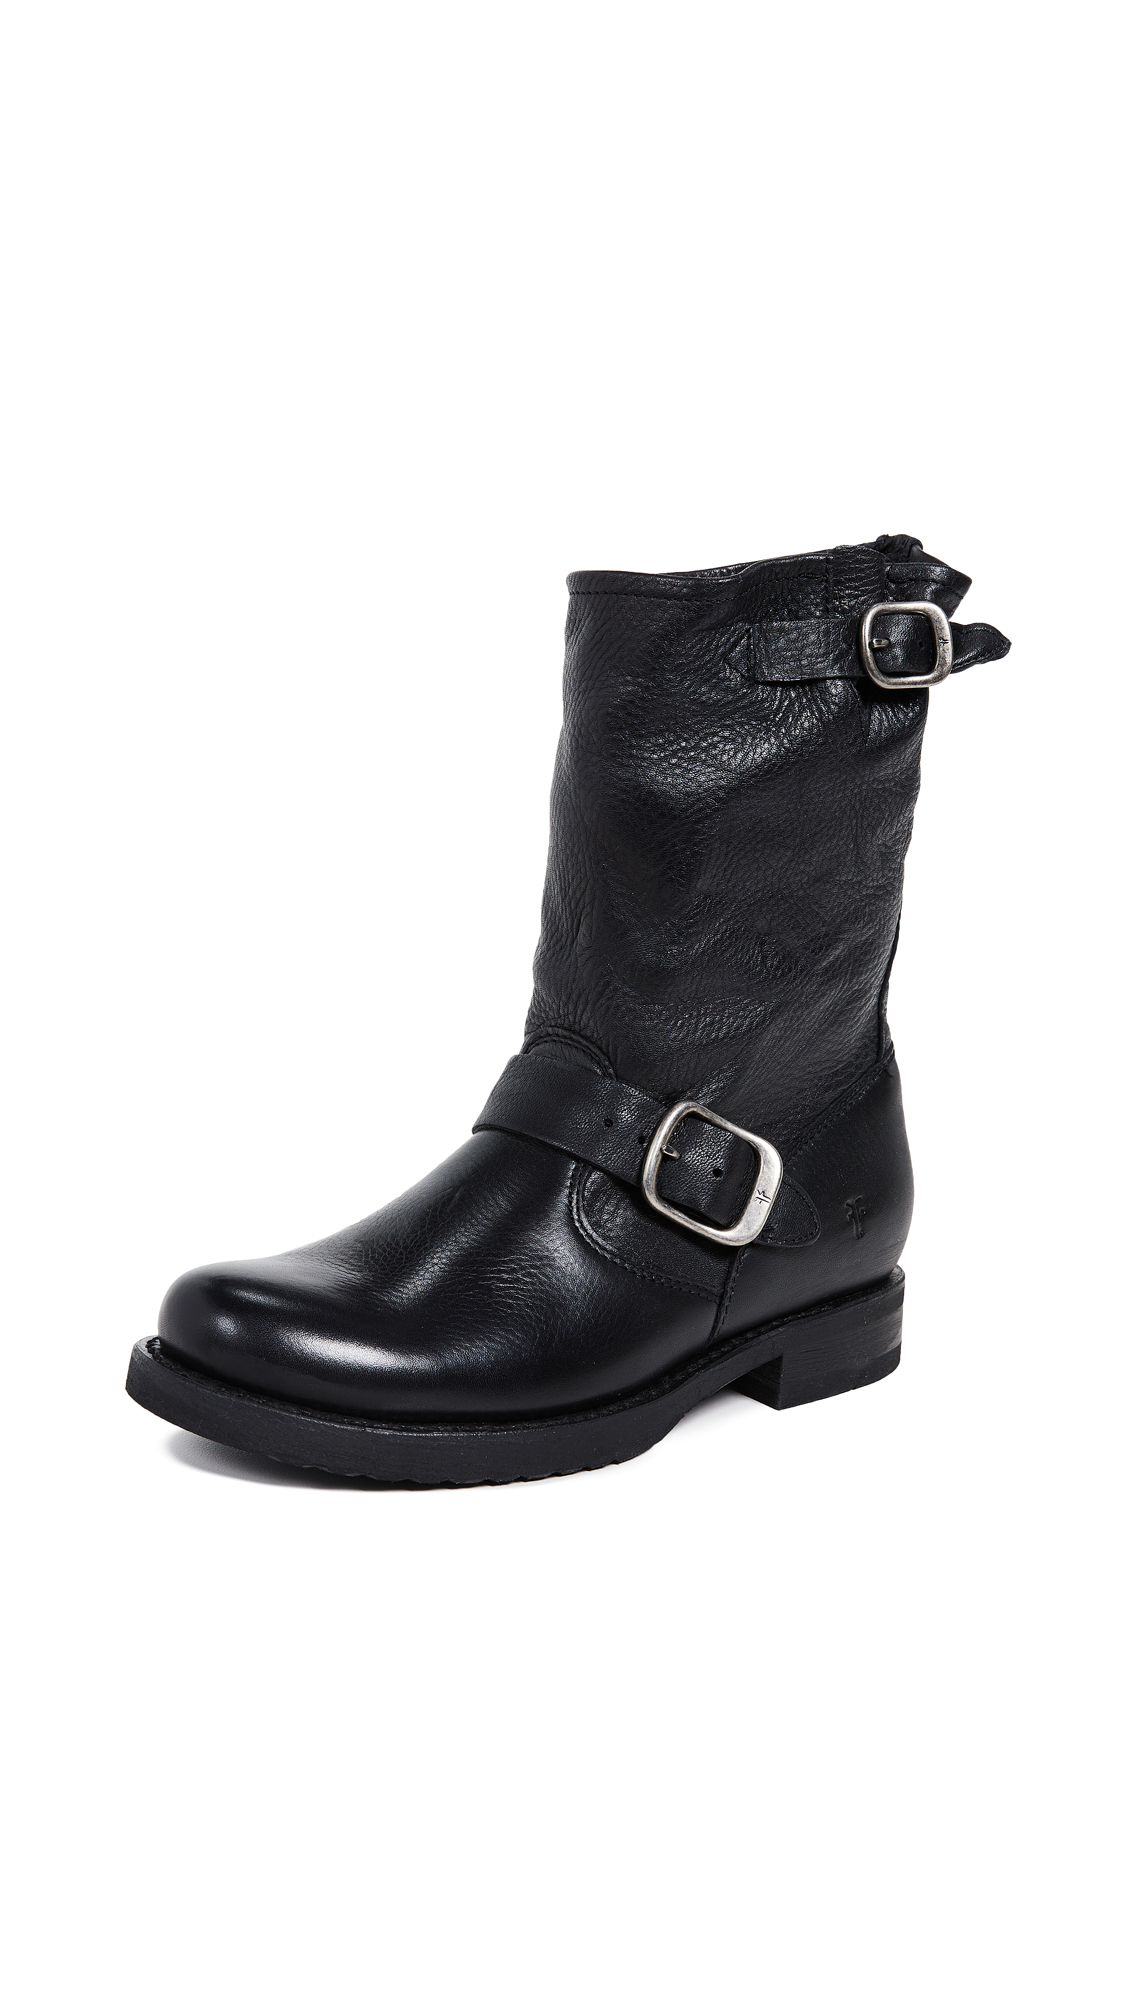 Frye Veronica Short Boots - Black